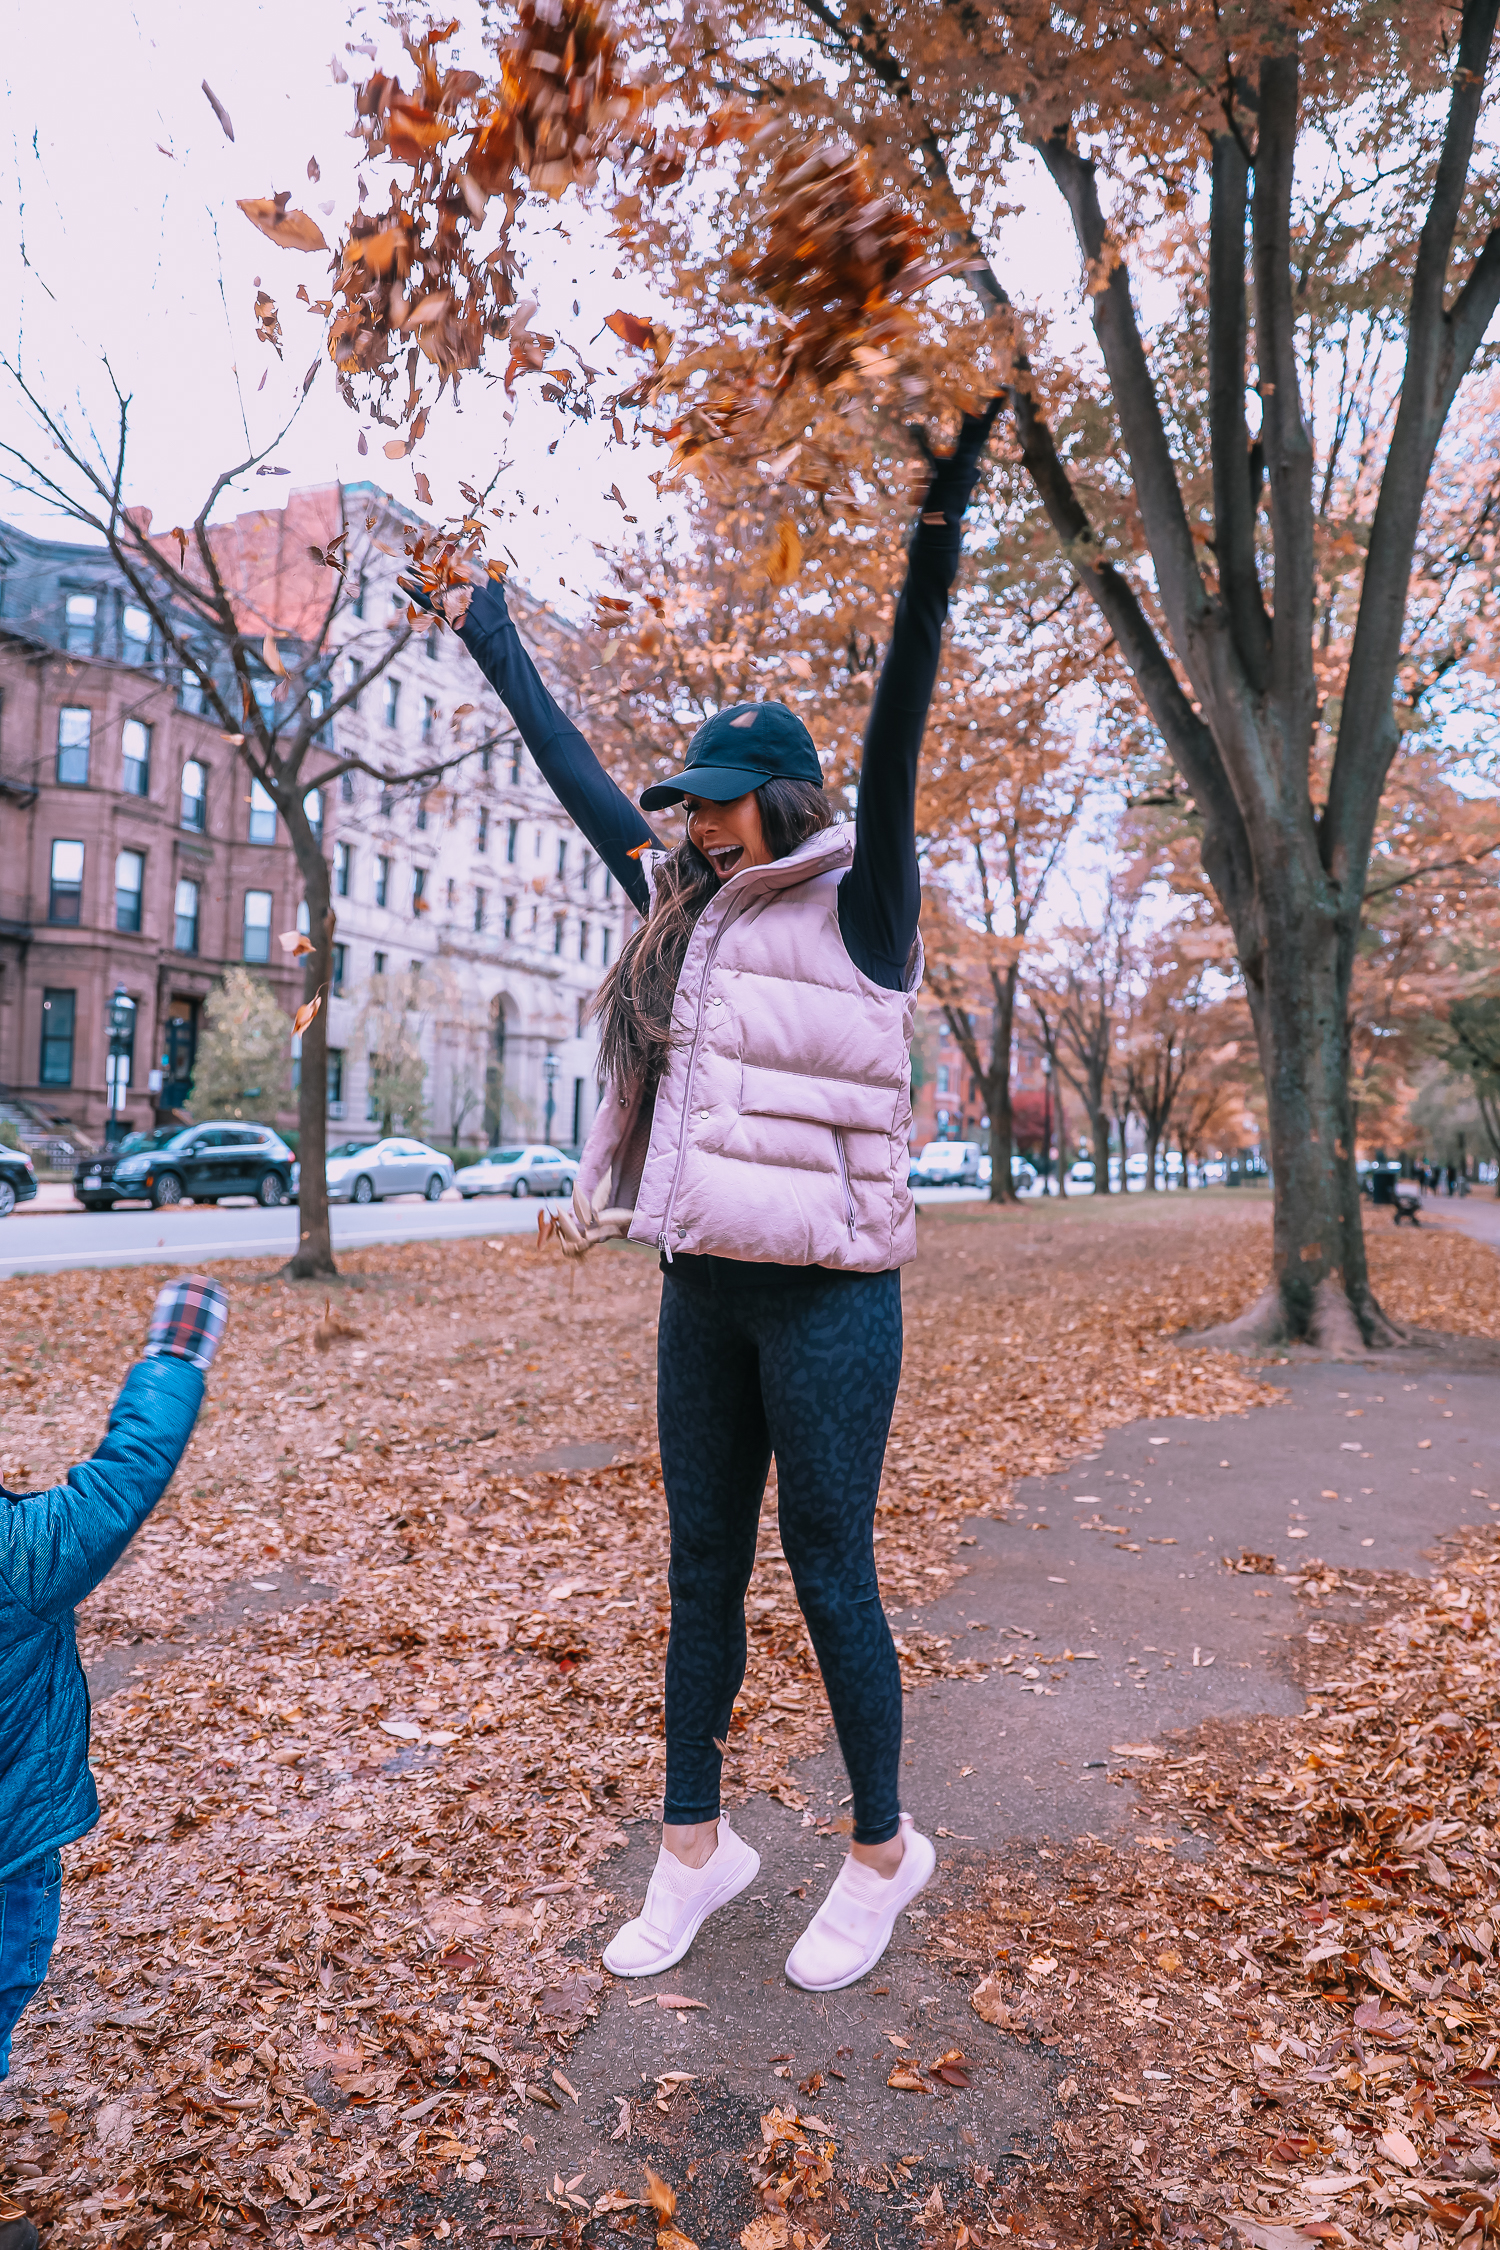 Lululemon Leopard Leggings and Vest Outfit featured by top US fashion blog, The Sweetest Thing: image of a woman wearing Lululemon Leopard Leggings, Lululemon oversized puffer vest, Lululemon black jacket and a Lululemon sports bra.